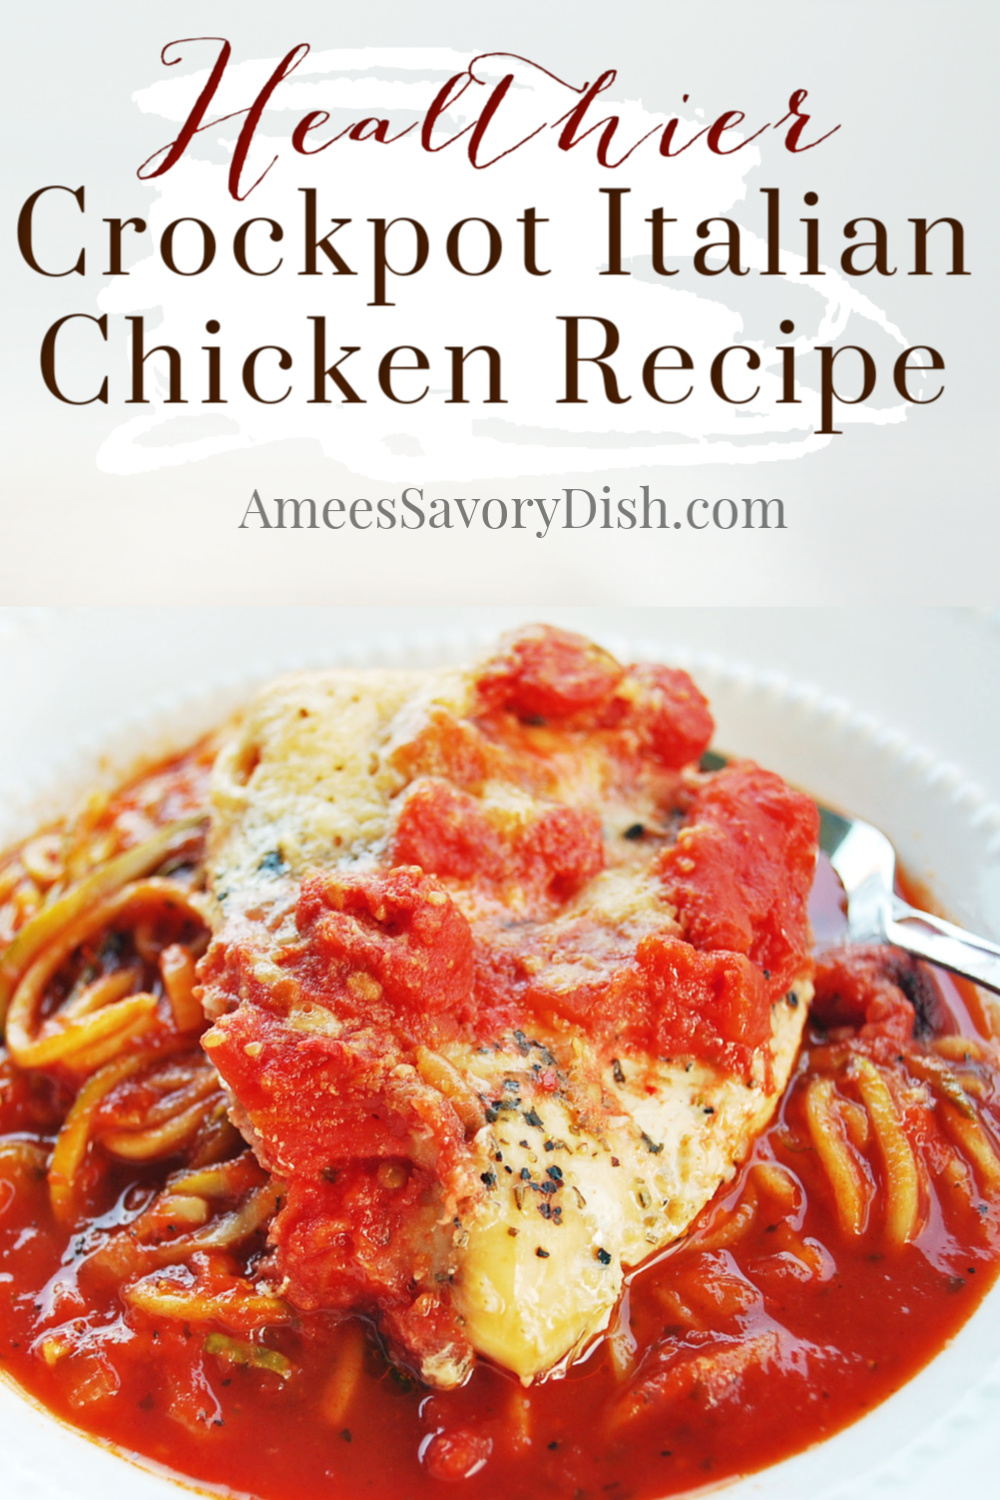 This Simple Crockpot Italian Chicken is a quick and easy nutritious crockpot recipe that the whole family will love made with boneless chicken breasts, tomatoes, herbs, and cheese.  Let your slow cooker do all the work, while you go about your day! #slowcooker #slowcookerchicken #chickenrecipe #crockpotchicken #cleaneating #healthychickenrecipe via @Ameecooks